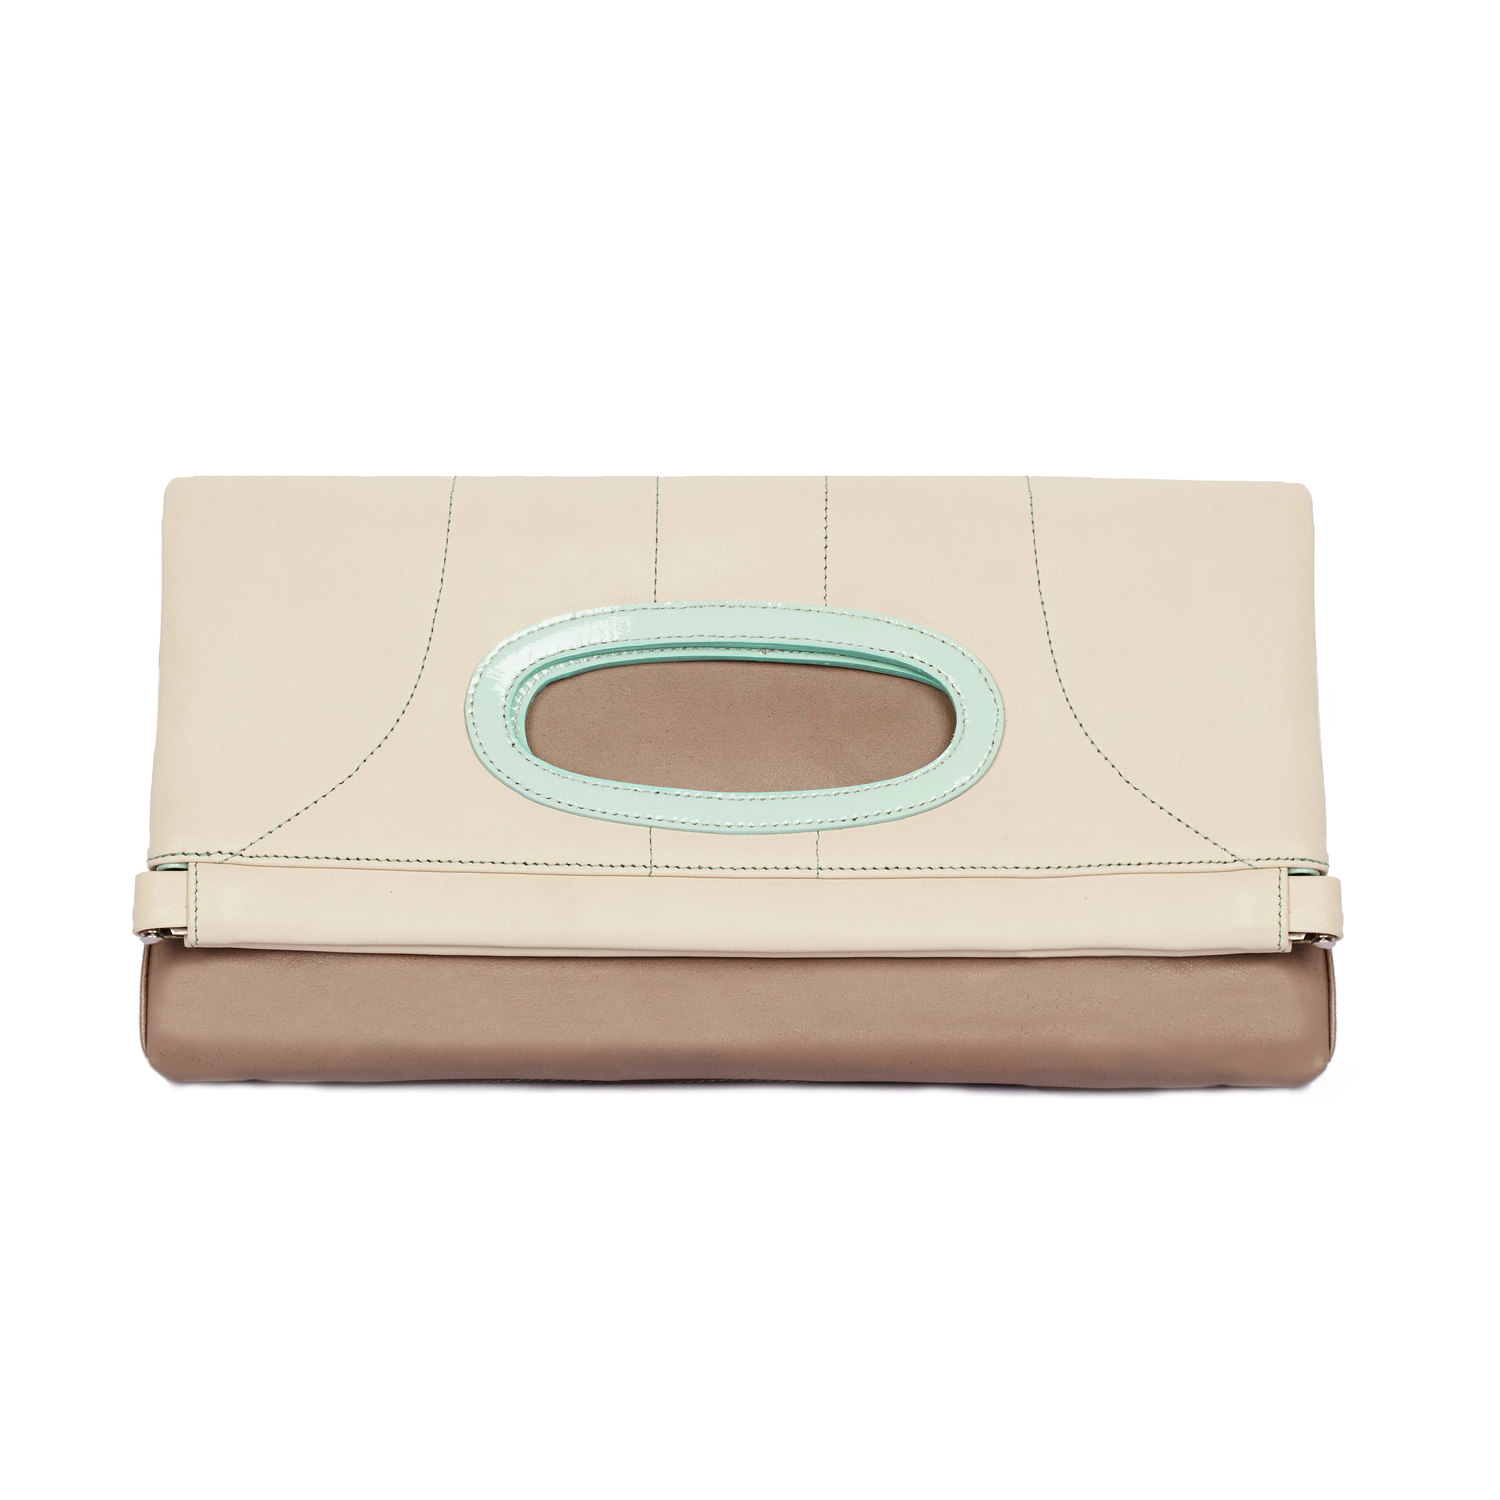 Luxe Beige | Soft Brown +Dazzling Mint - $395.00